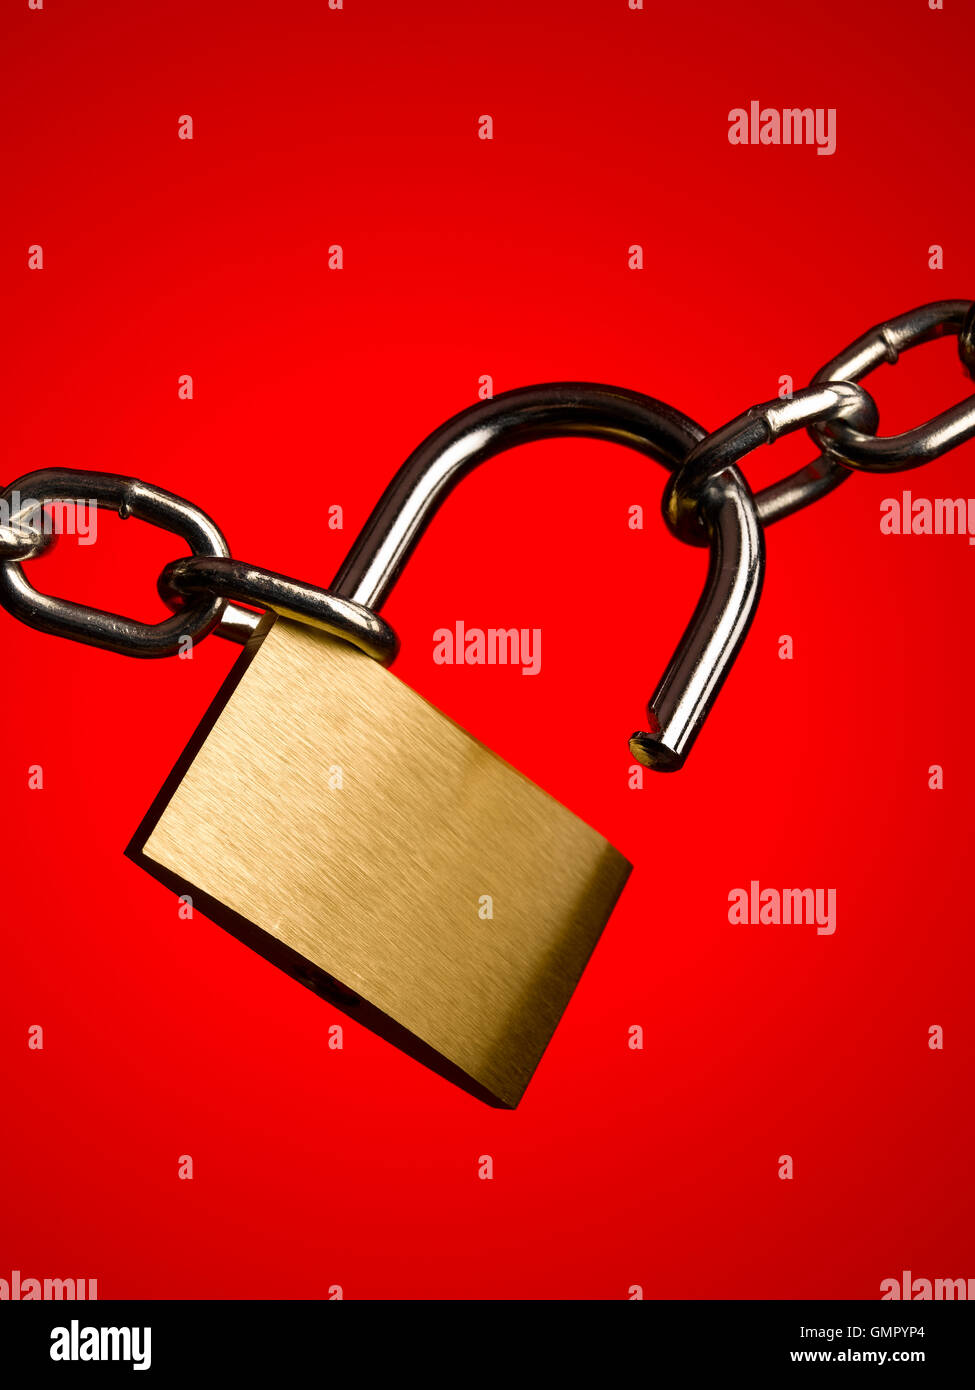 Padlock and chain on red - Stock Image